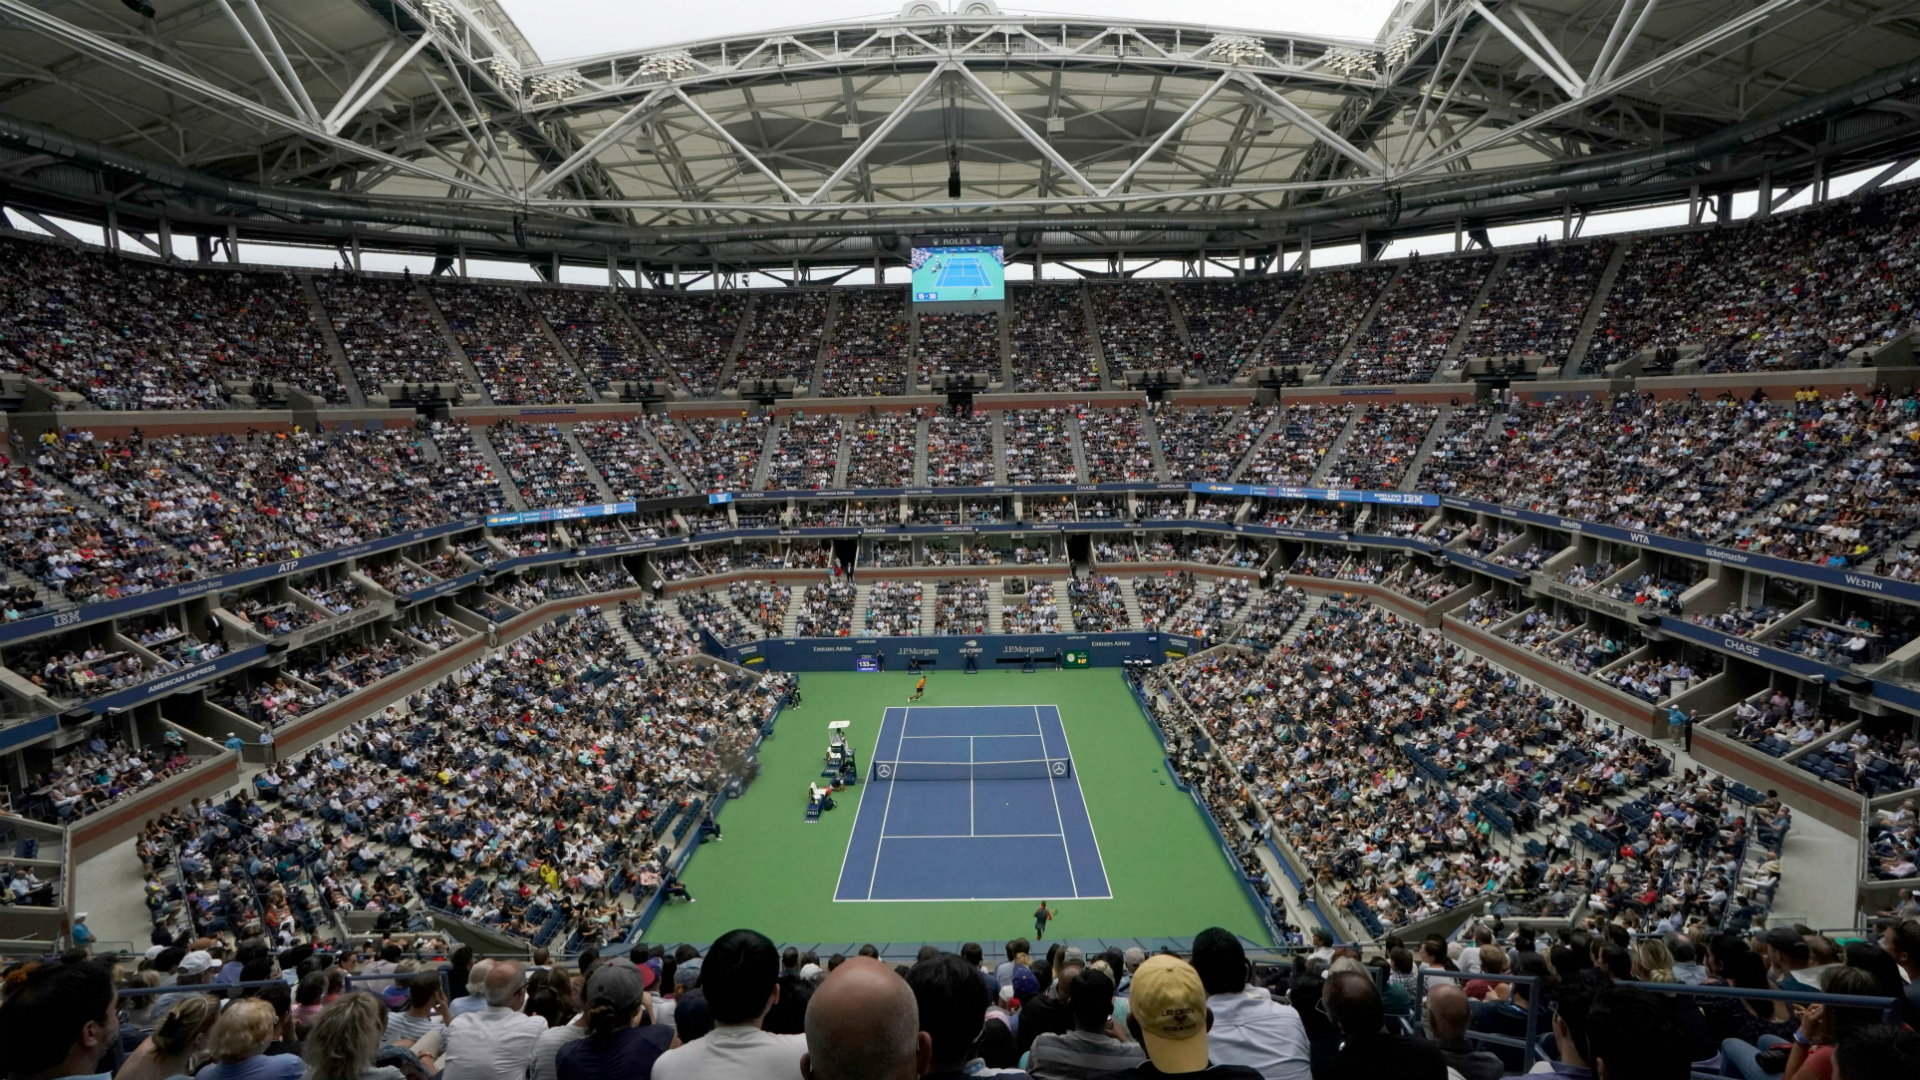 U.S. Open 2019 schedule: TV channels, dates, times for ...